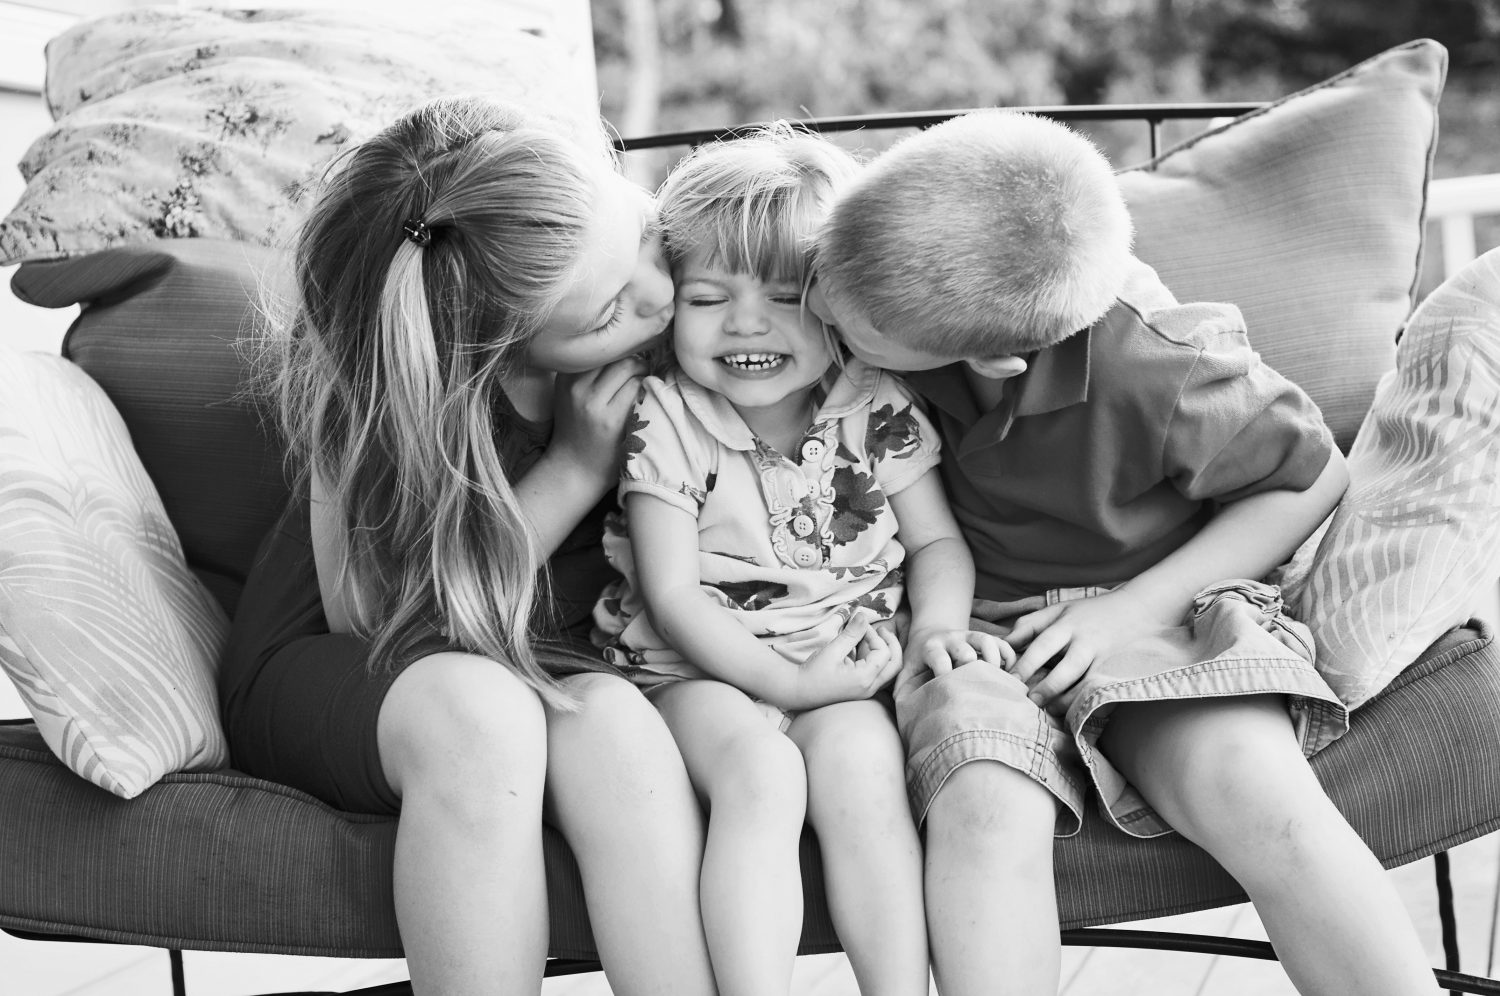 two siblings kissing the cheek of a third sibling while sitting together